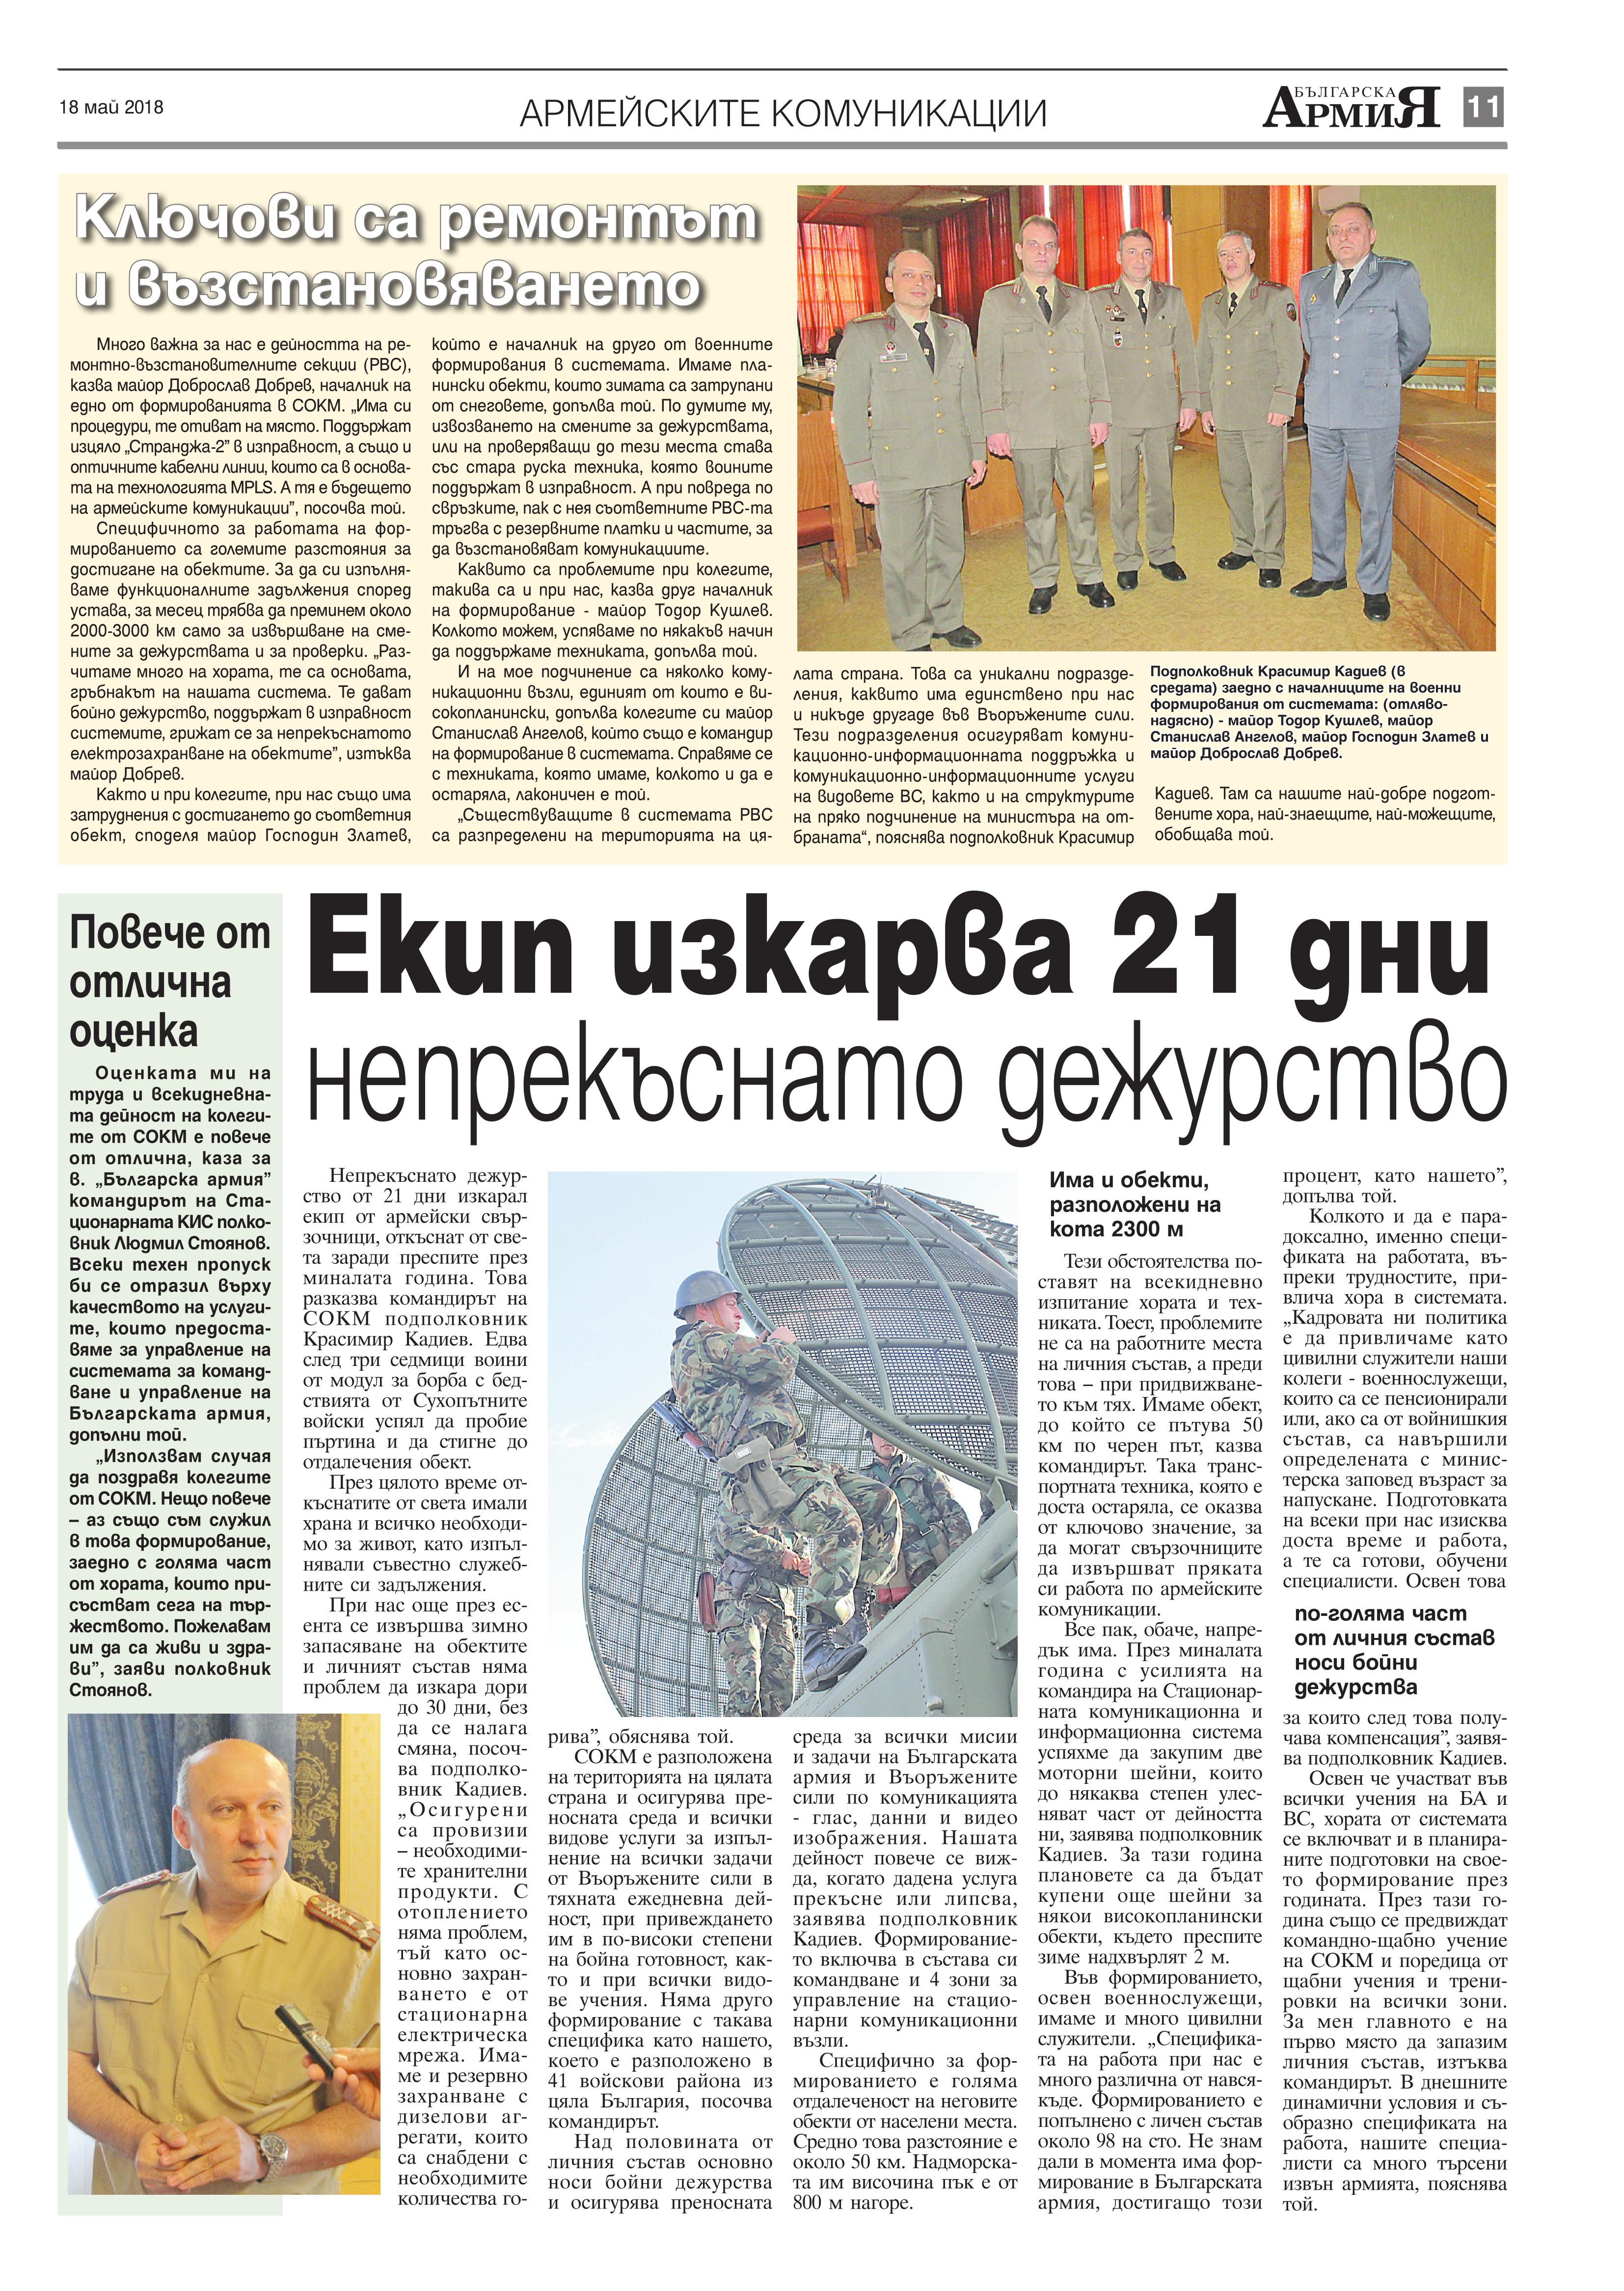 http://armymedia.bg/wp-content/uploads/2015/06/11.page1_-51.jpg